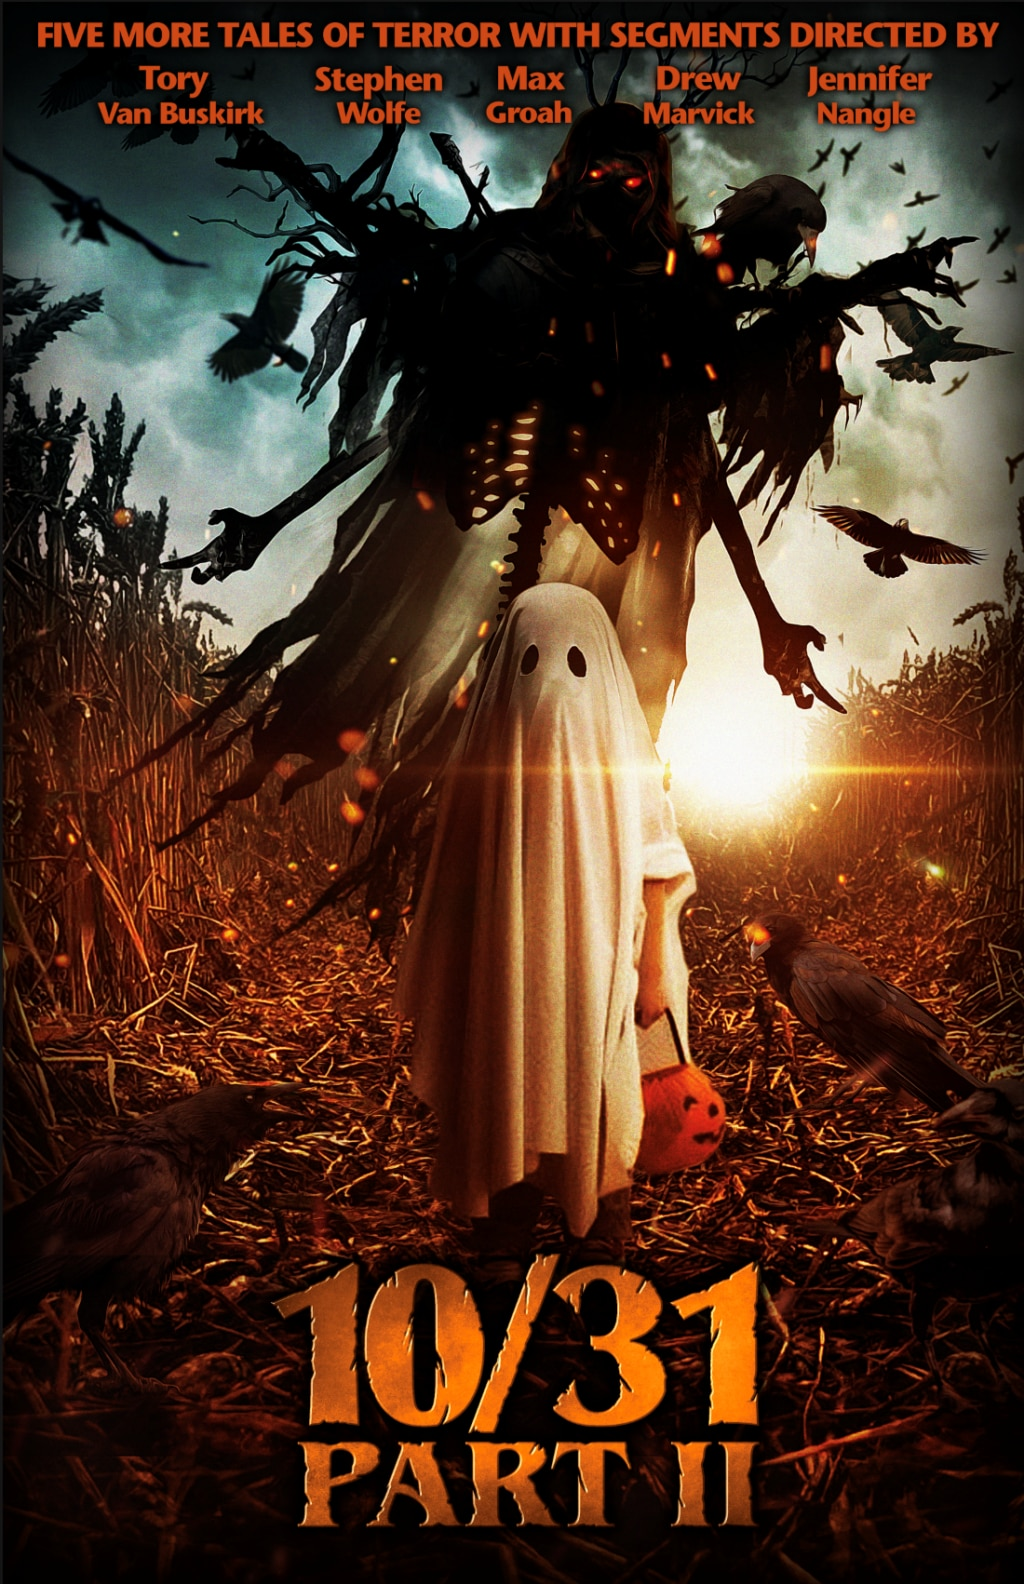 10 31 PART II 1024x1584 - New Trailer and Poster for Halloween Anthology 10/31 PART II